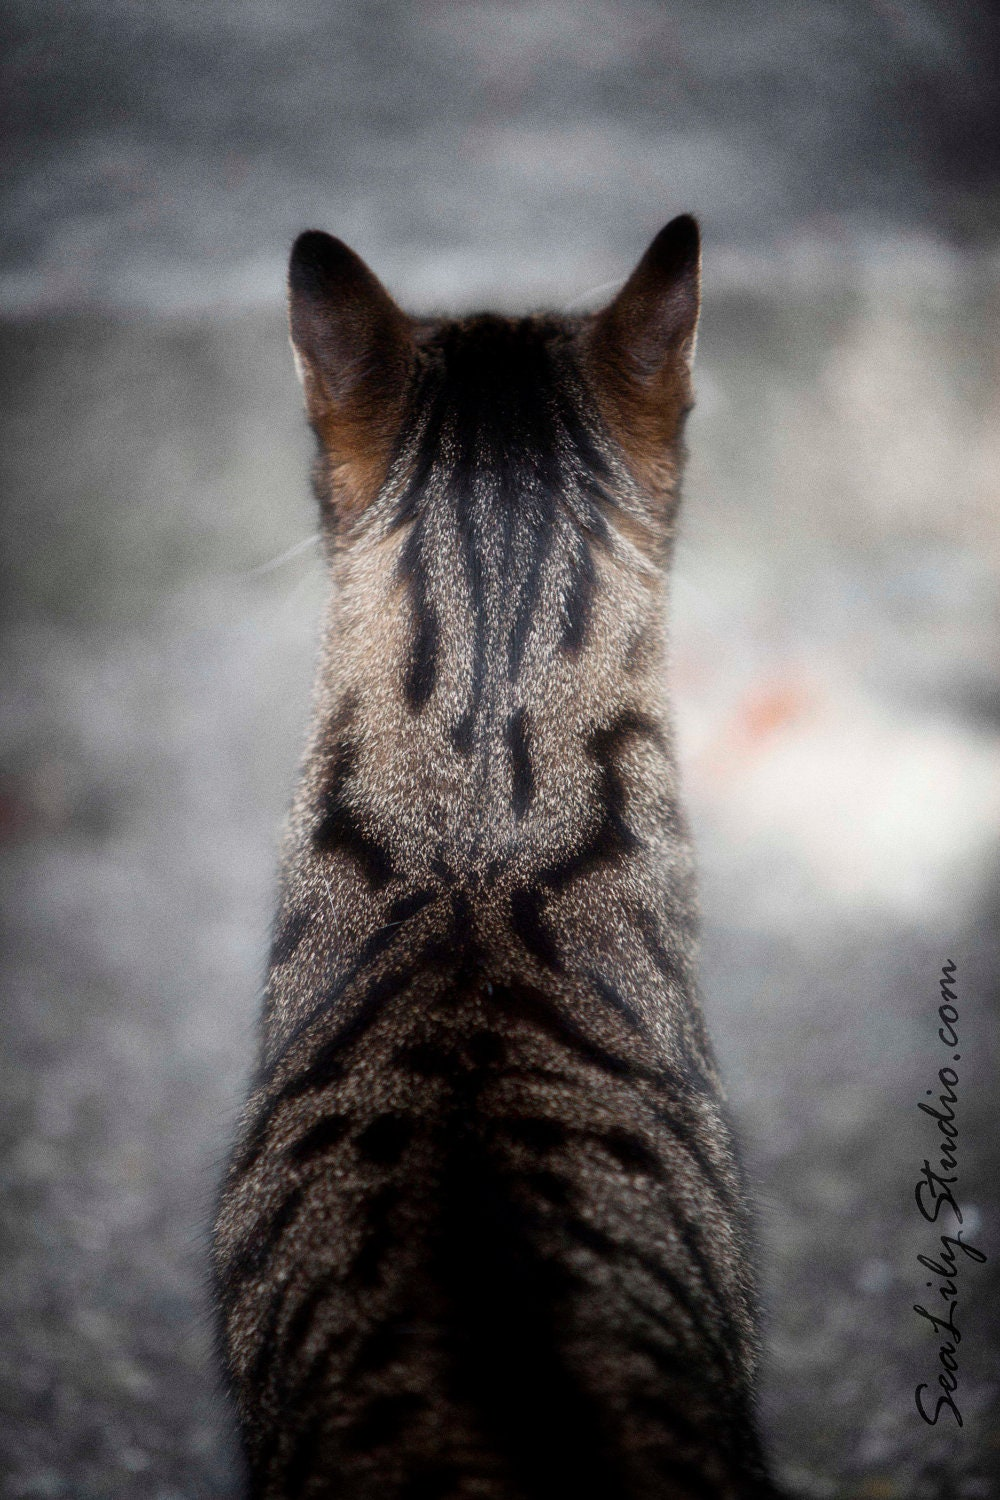 Henry's Head 8x12 : cat photo animal pet photography tabby cat lover tan black tiger home decor fine art print - SeaLilyStudio